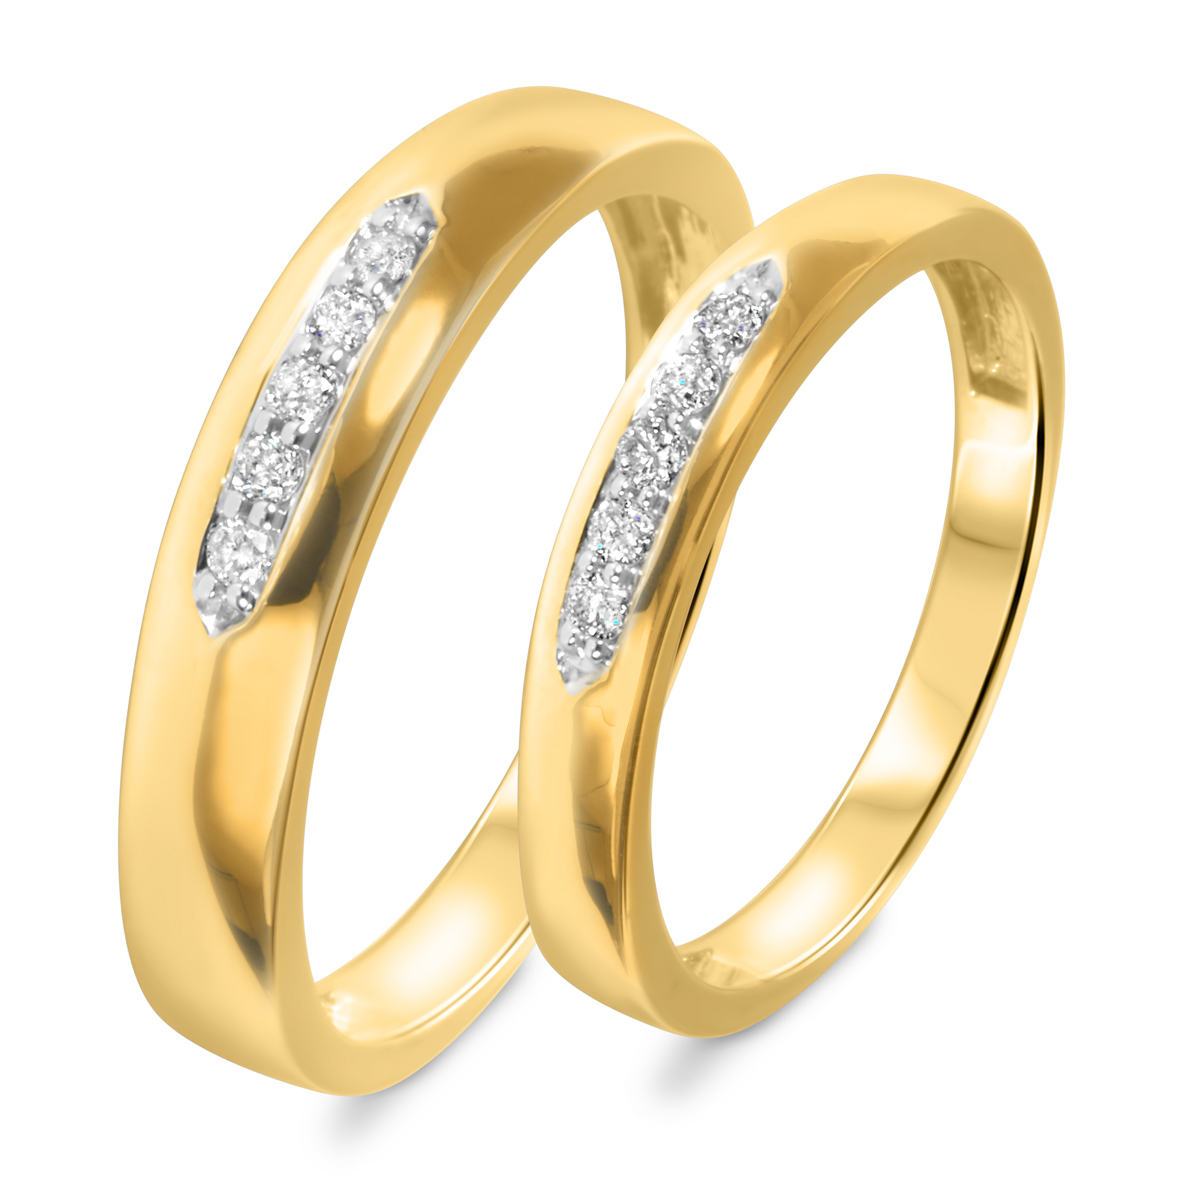 1/5 Carat T.W. Round Cut Diamond His And Hers Wedding Band Set 10K Yellow Gold-